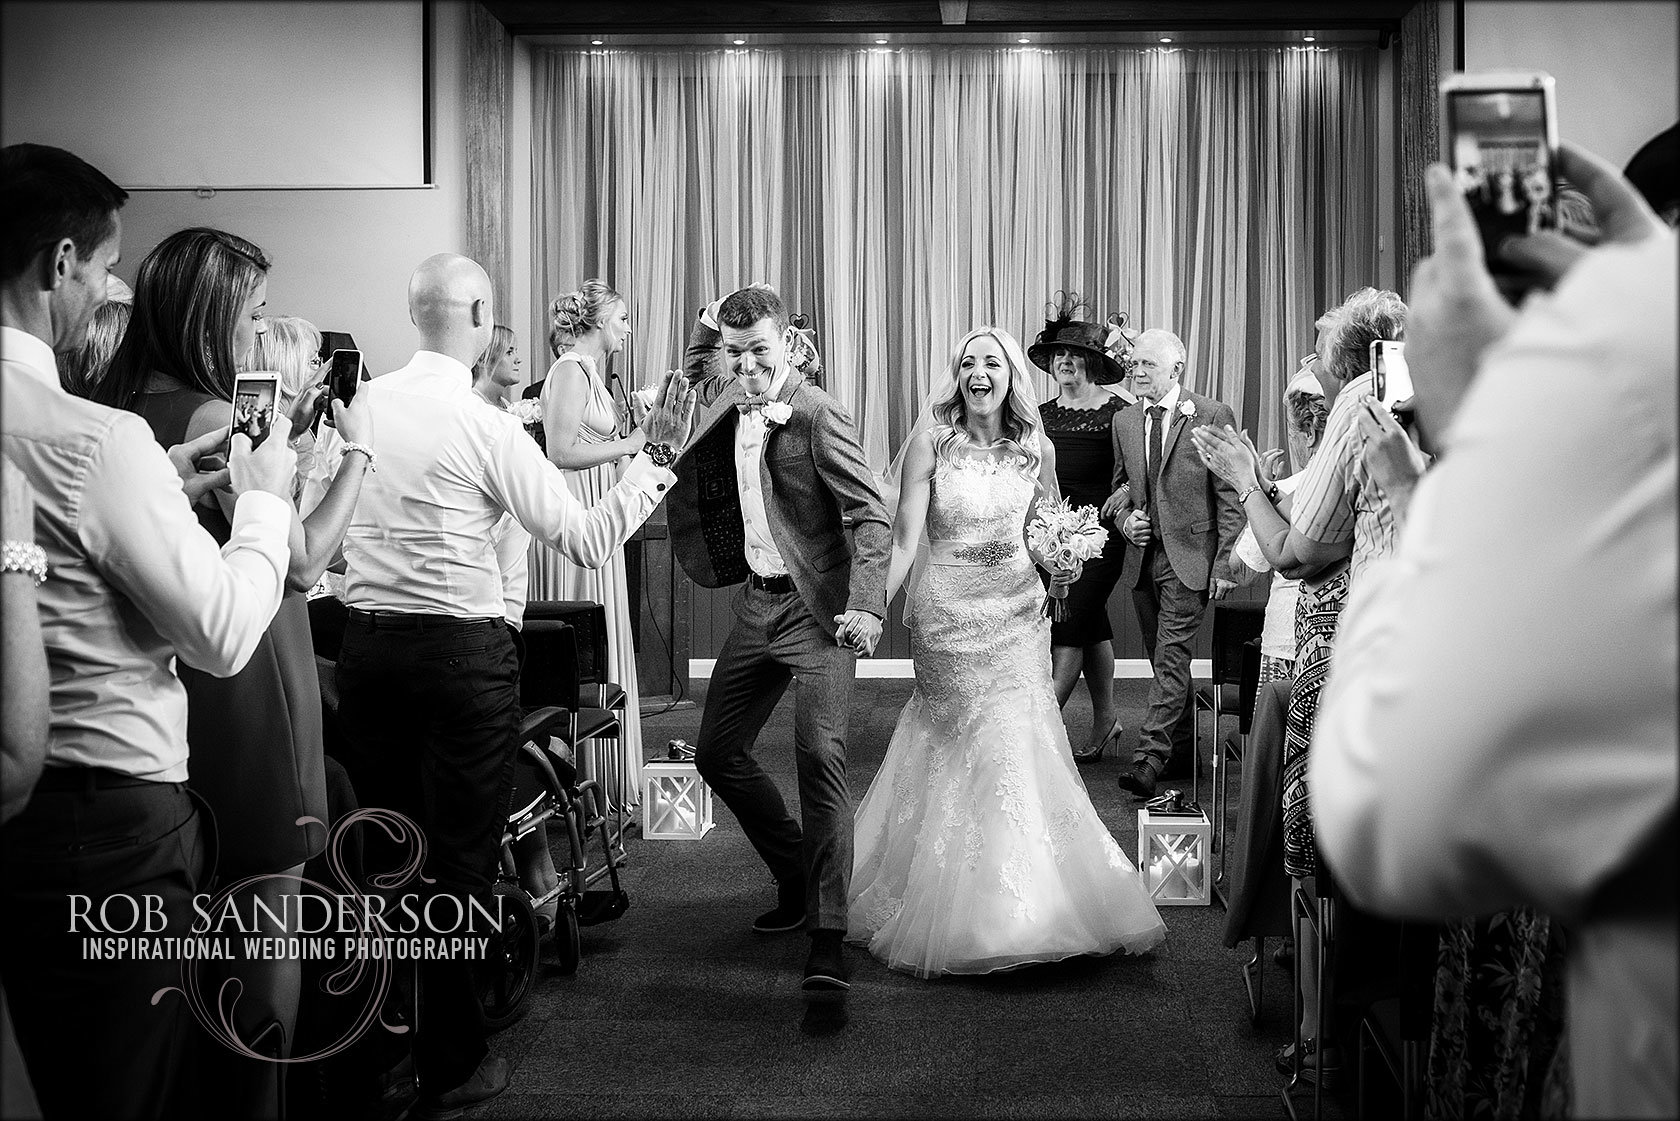 very happy groom celebrates with his bride walking down the aisle